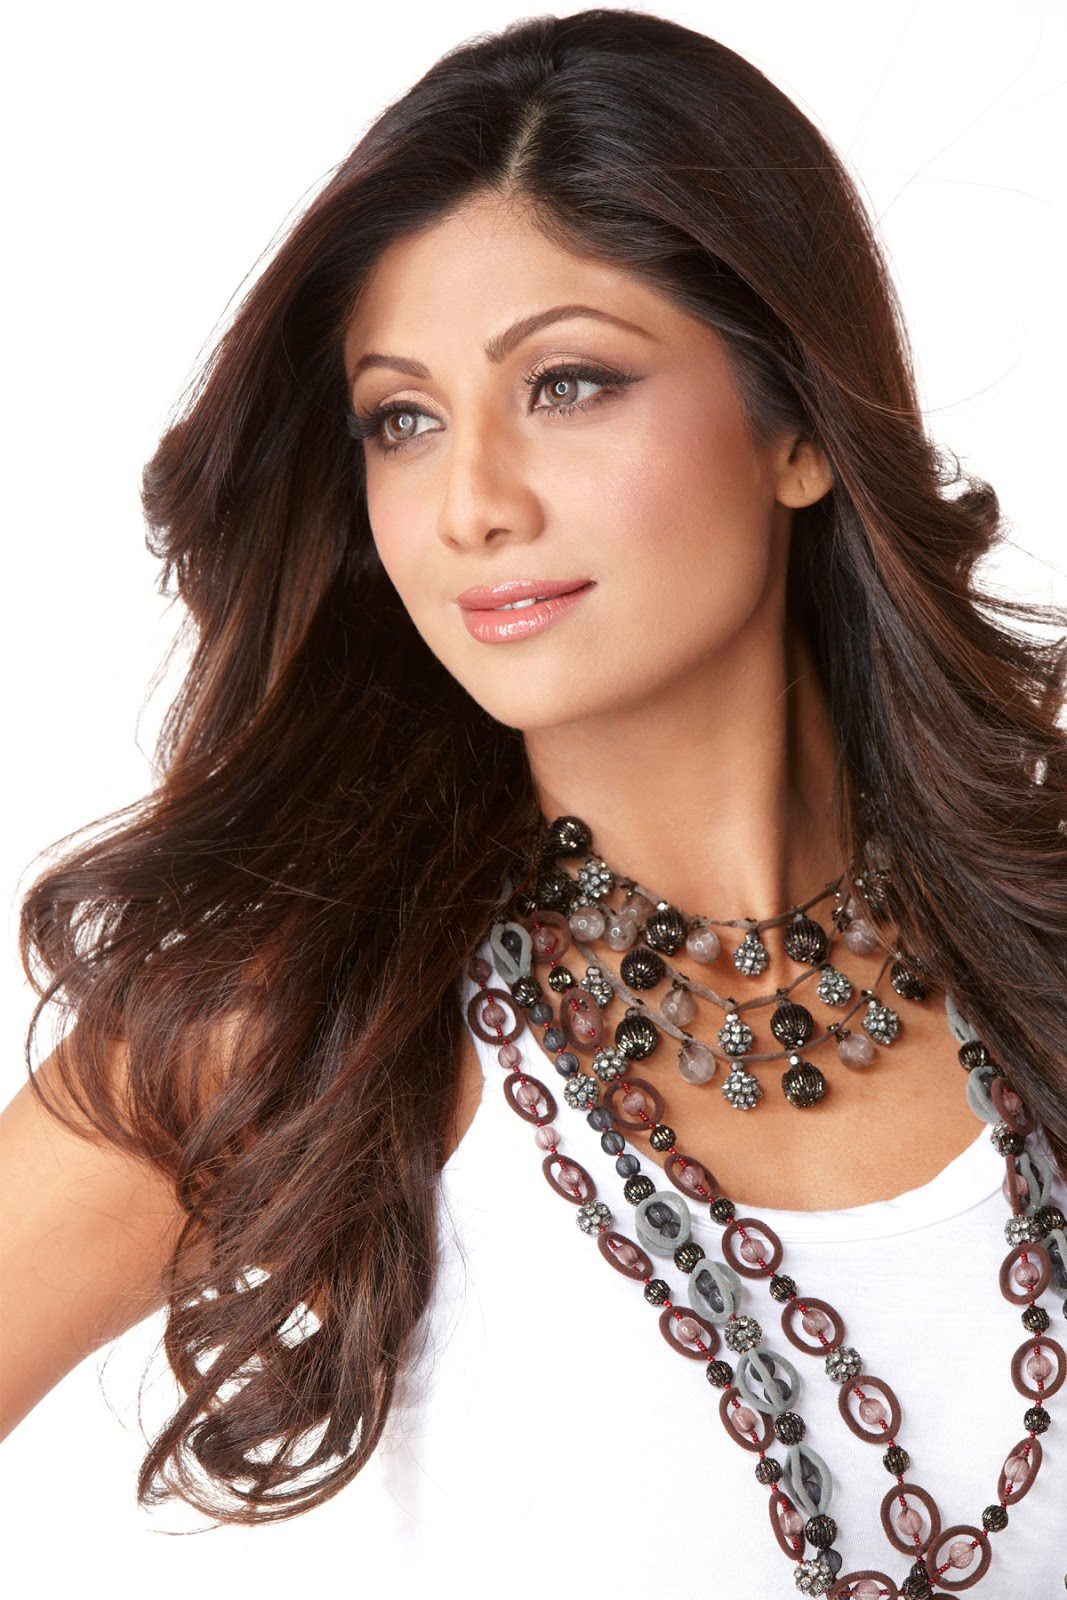 Happy Birthday to Shilpa Shetty - June 8 | HD Wallpapers ...